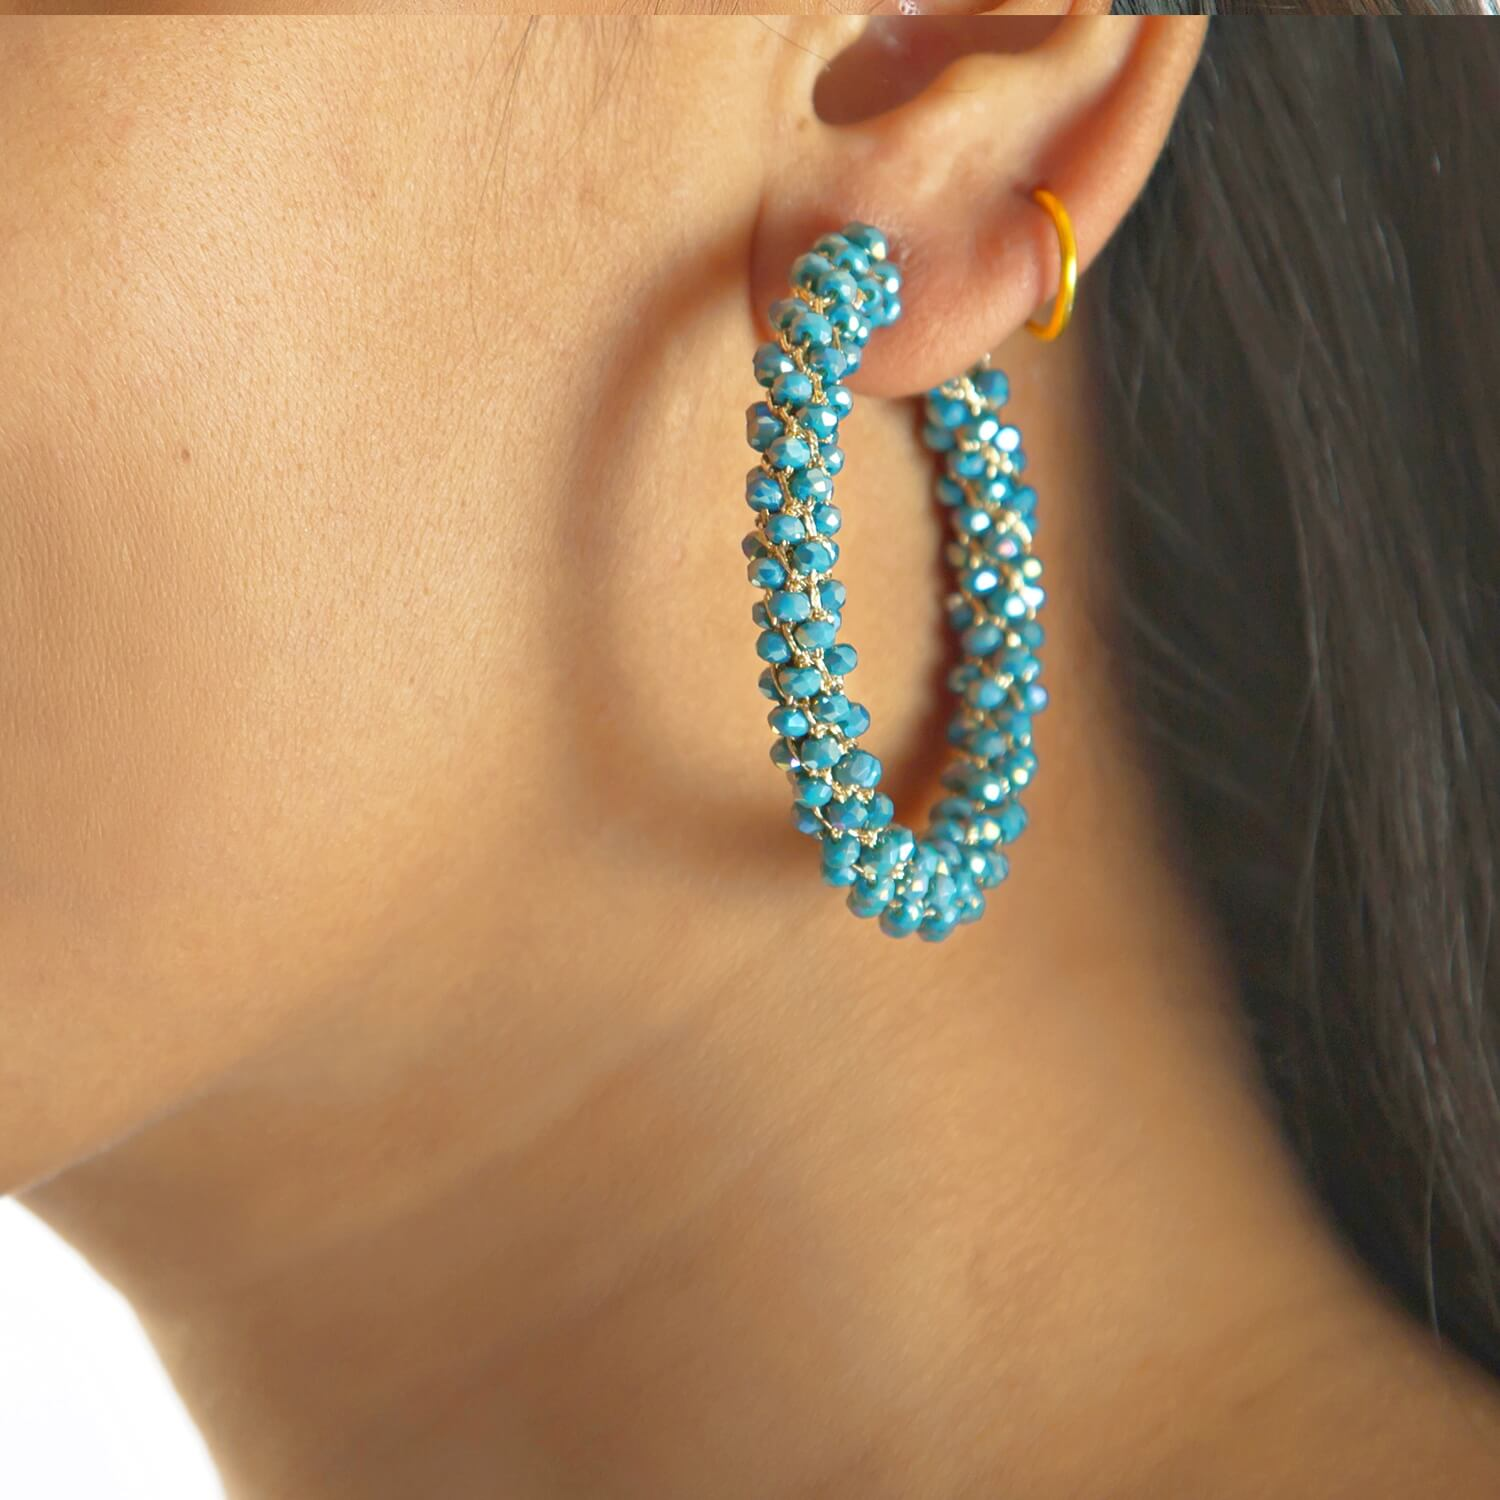 Kendra Aqua Hoop Earring - Model